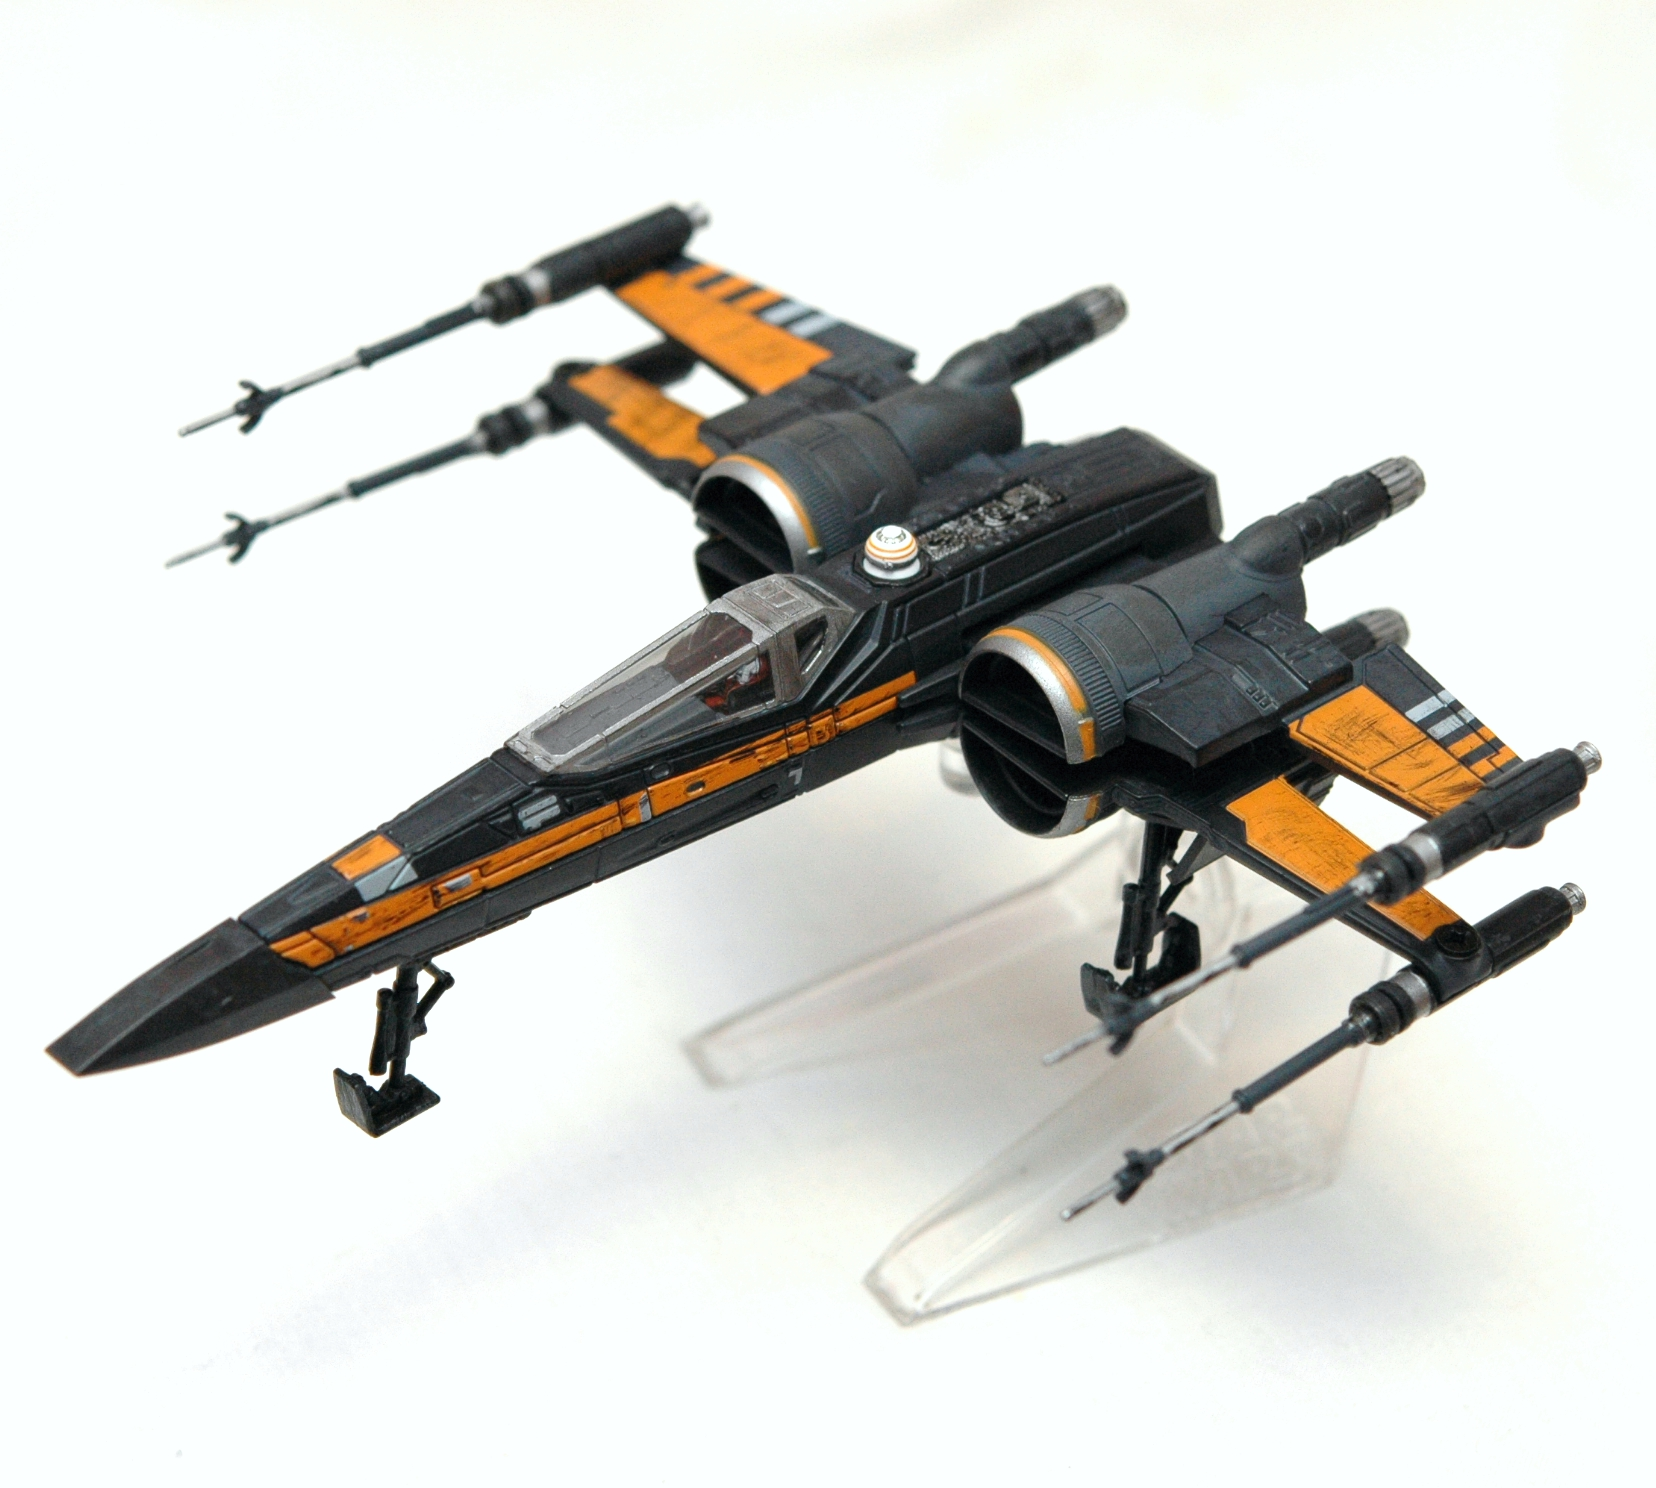 Hot Wheels elite Star Wars X-Wing fighter the force awakens